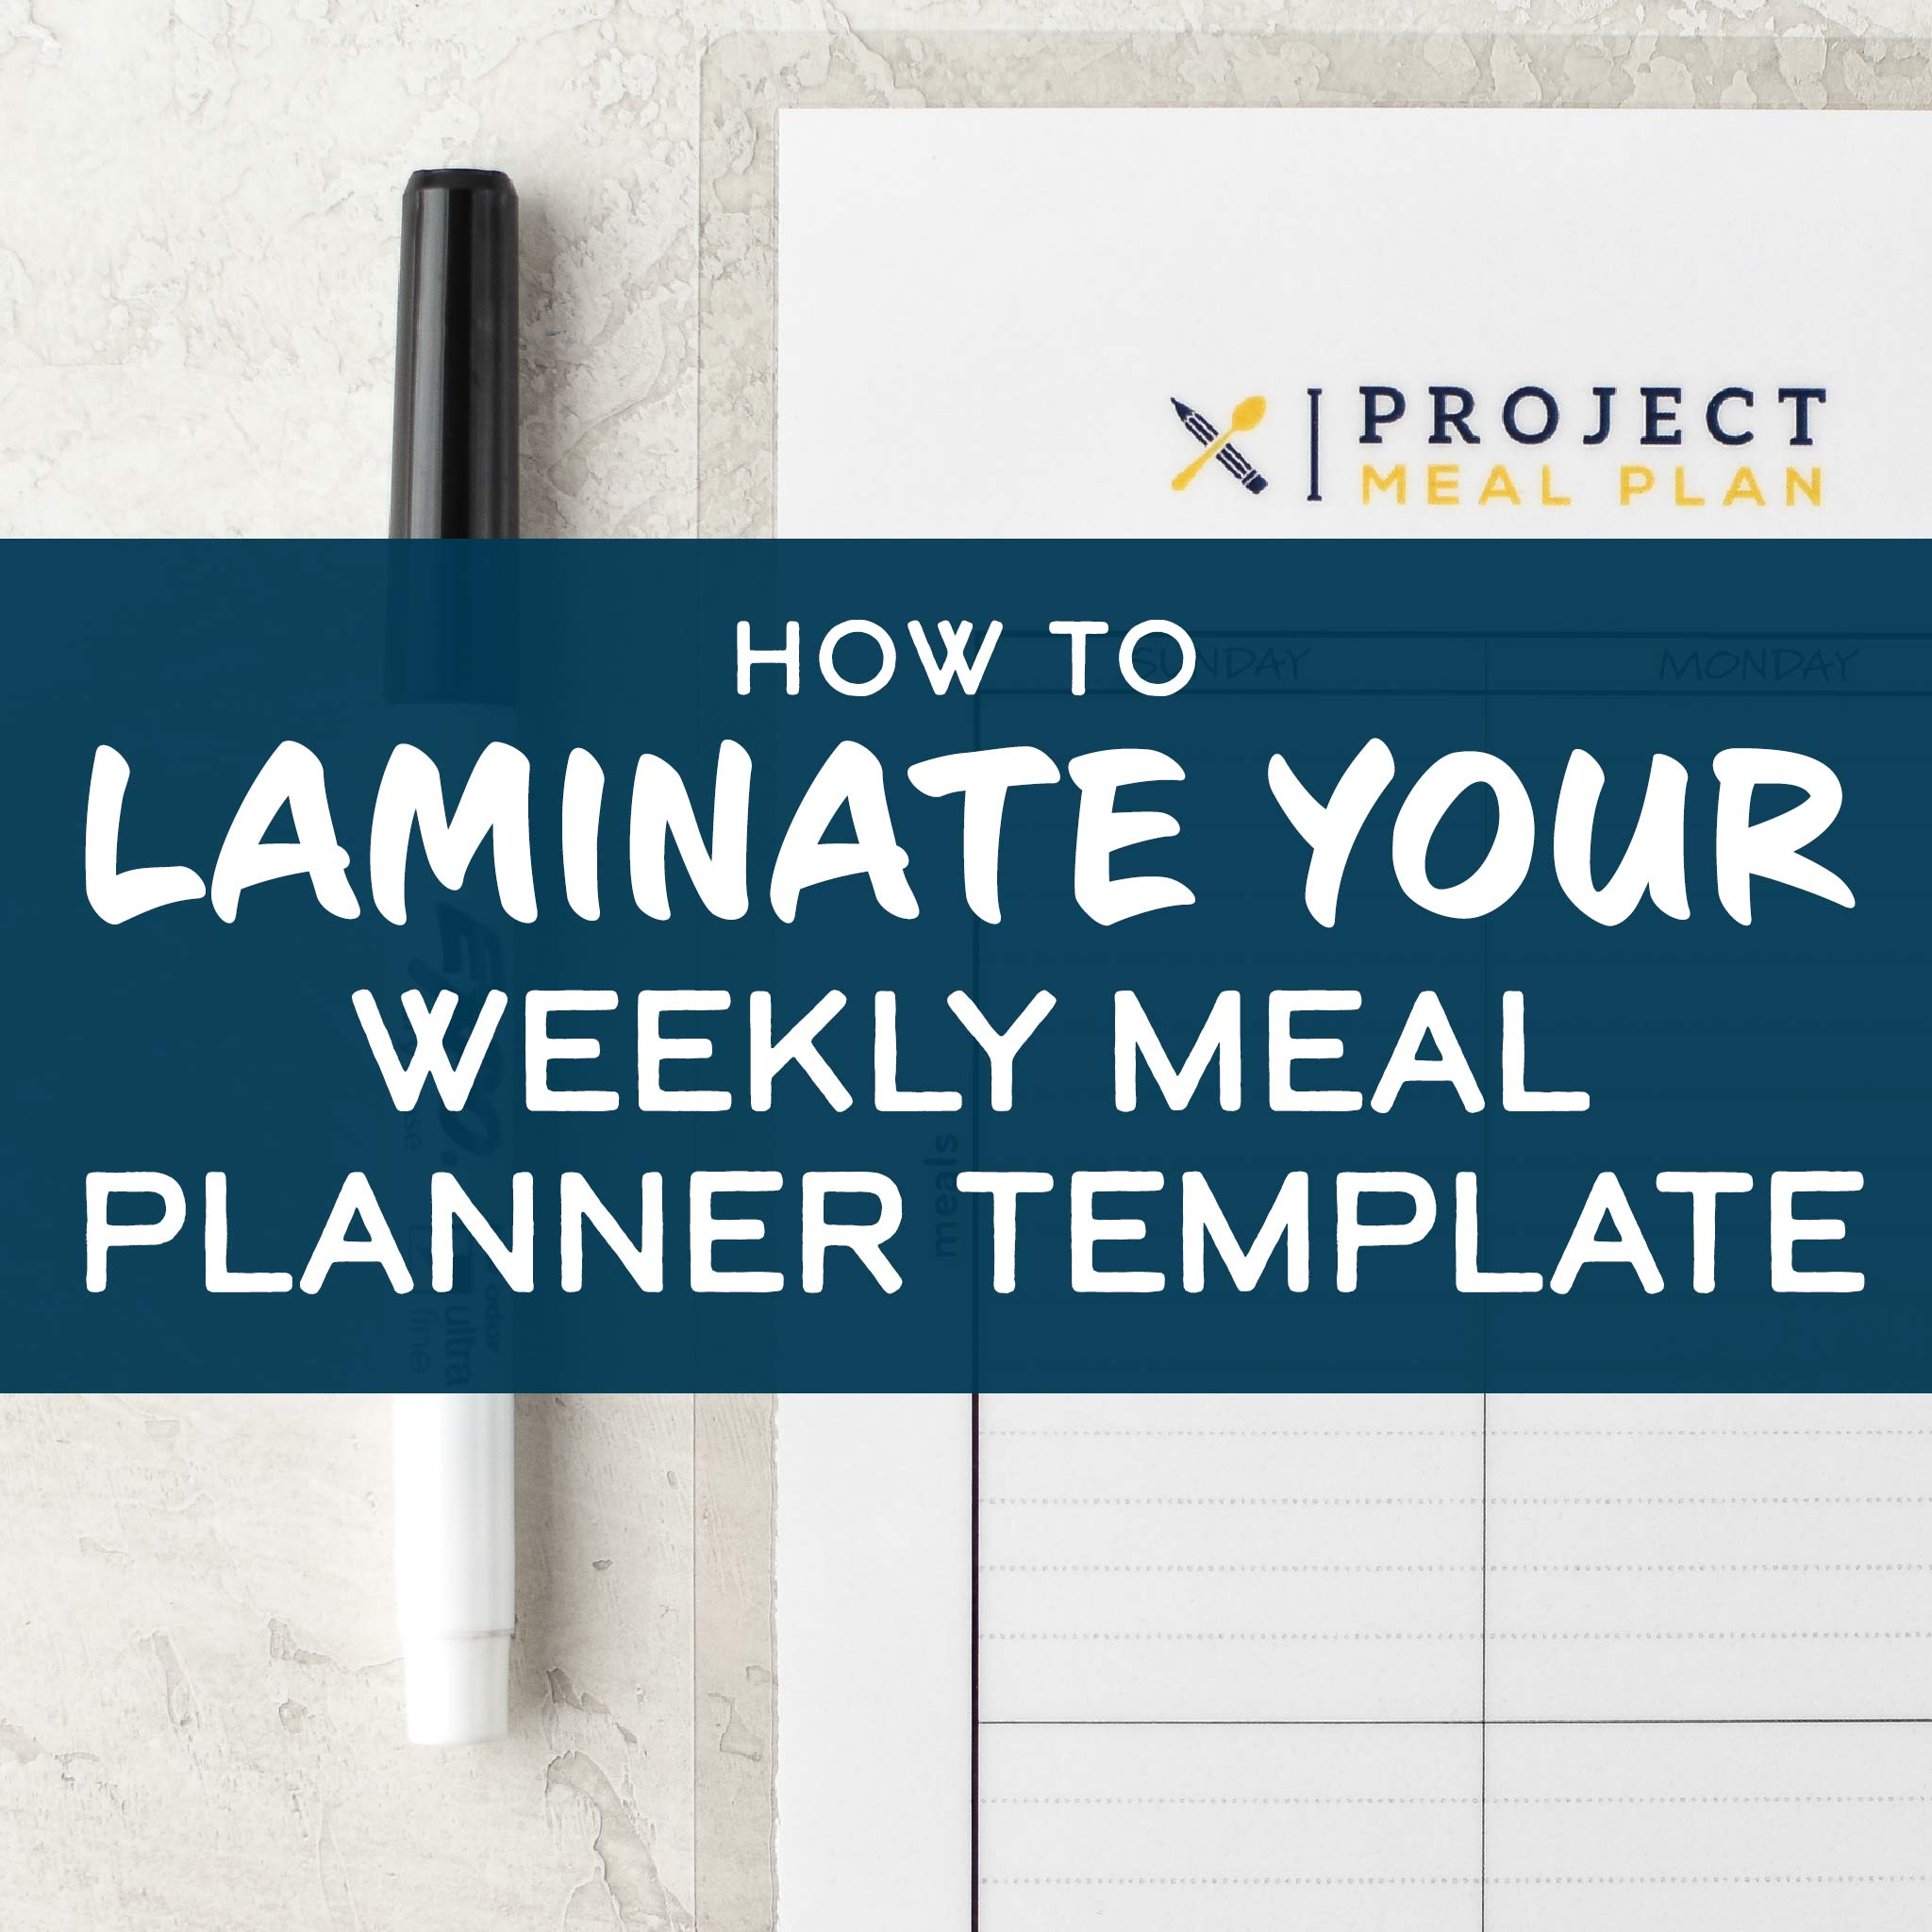 cover for how to laminate your weekly meal planner template